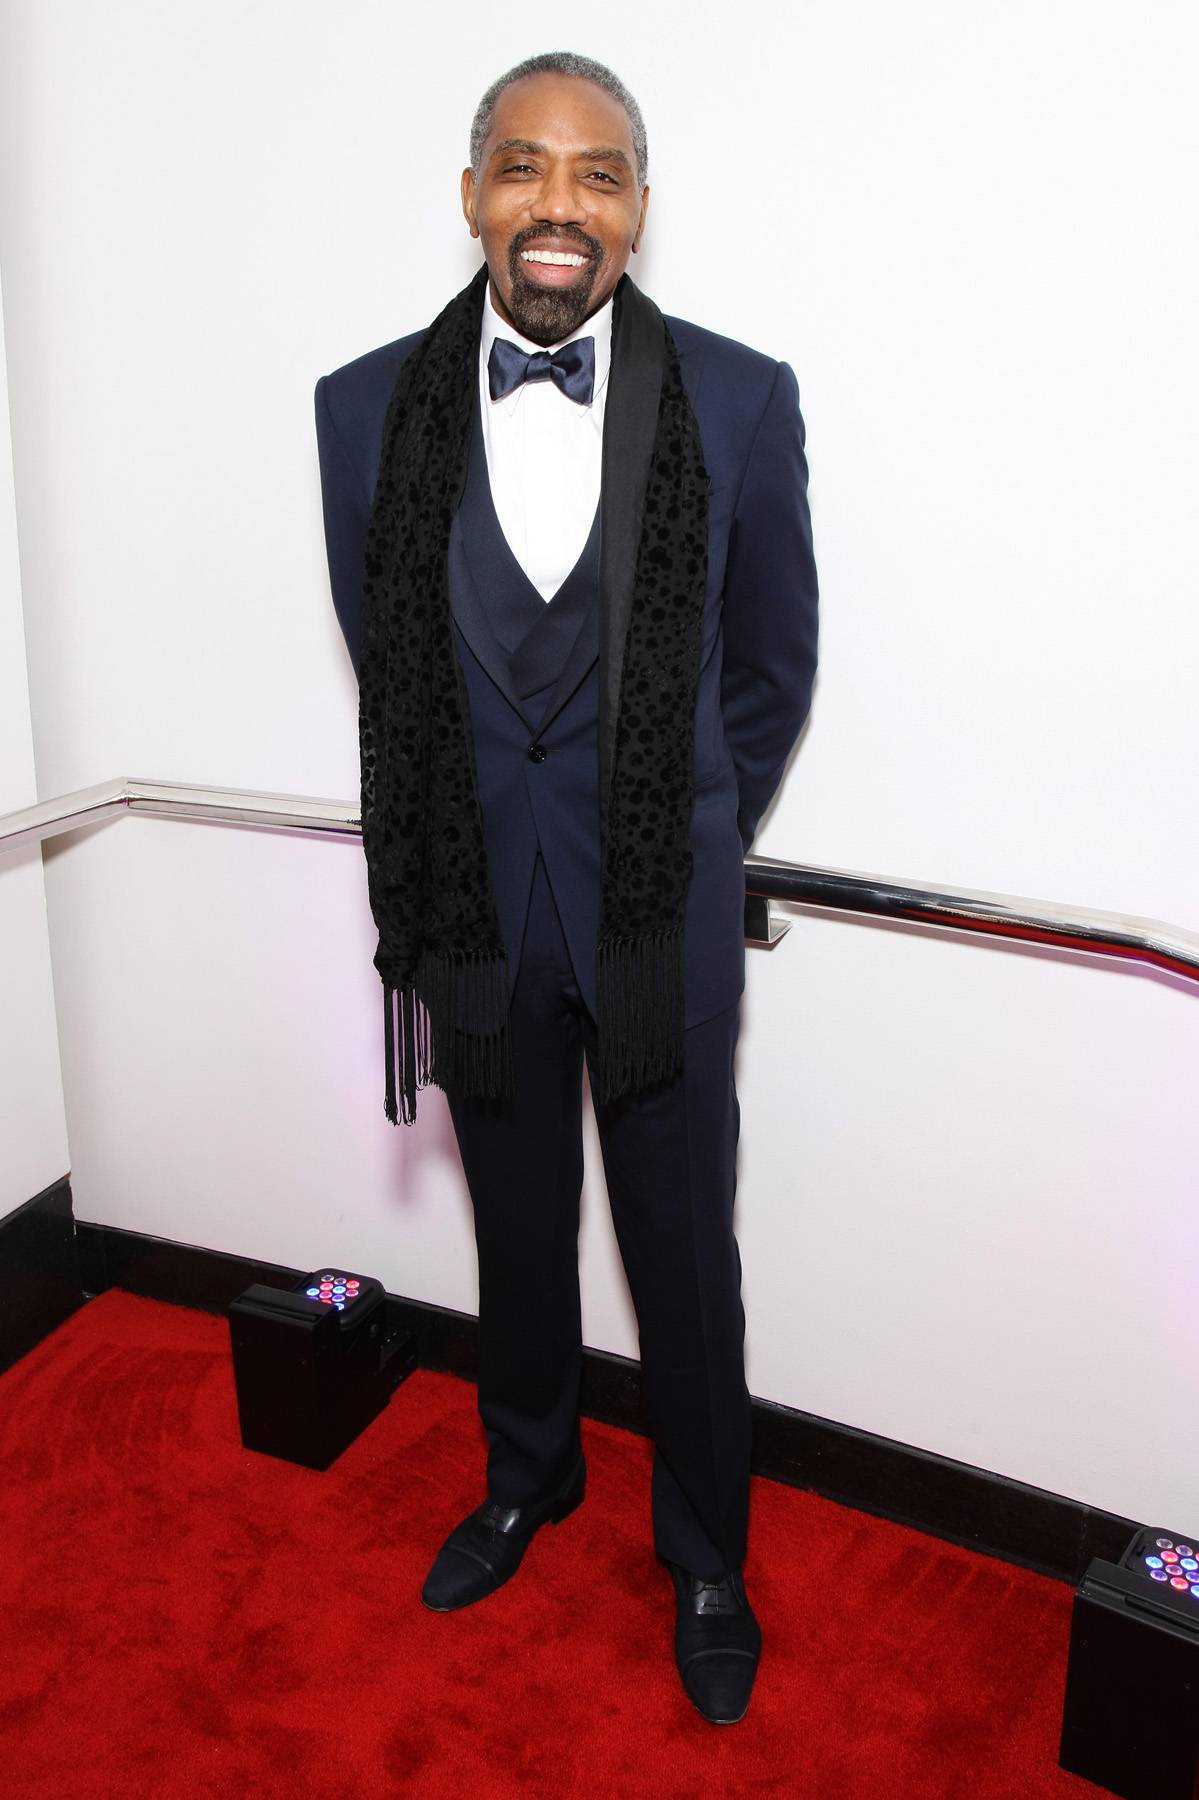 Broadcasting Style  - President of Broadcast Media Sales for BET Louis Carr takes to the carpet in his dashing suit. (Photo: Bennett Raglin/BET/Getty Images for BET)